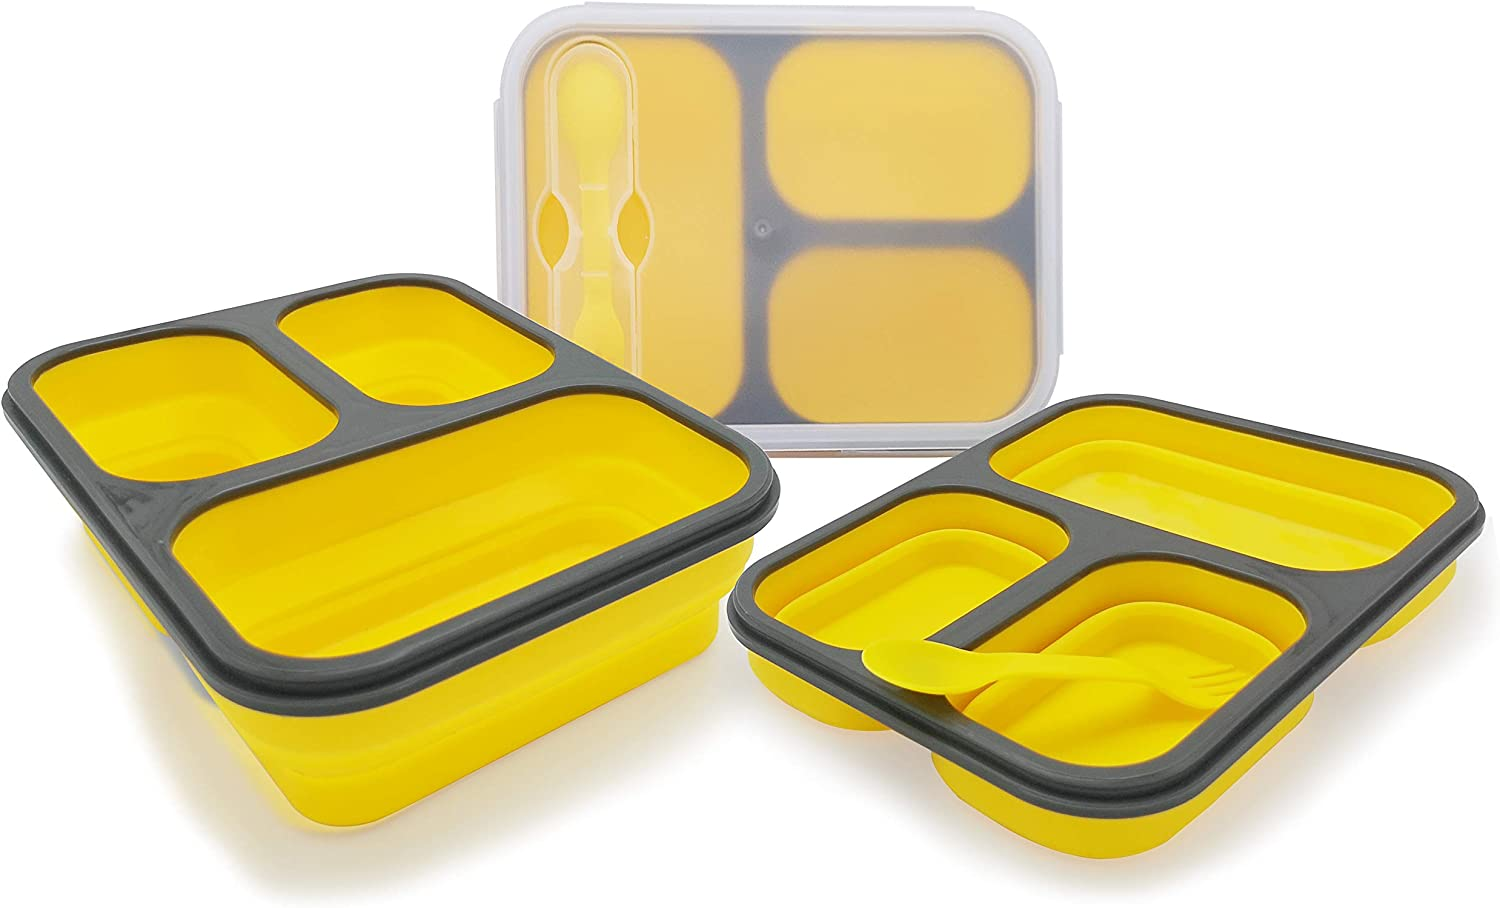 Exclusivo Bolsillo Bento Lunch Box for Women Men & Kids With Spoon & Fork,BPA Free,Collapsible and Leakproof Food Grade Silicone Food Storage Containers with 3 Compartments (Yellow,One Container)